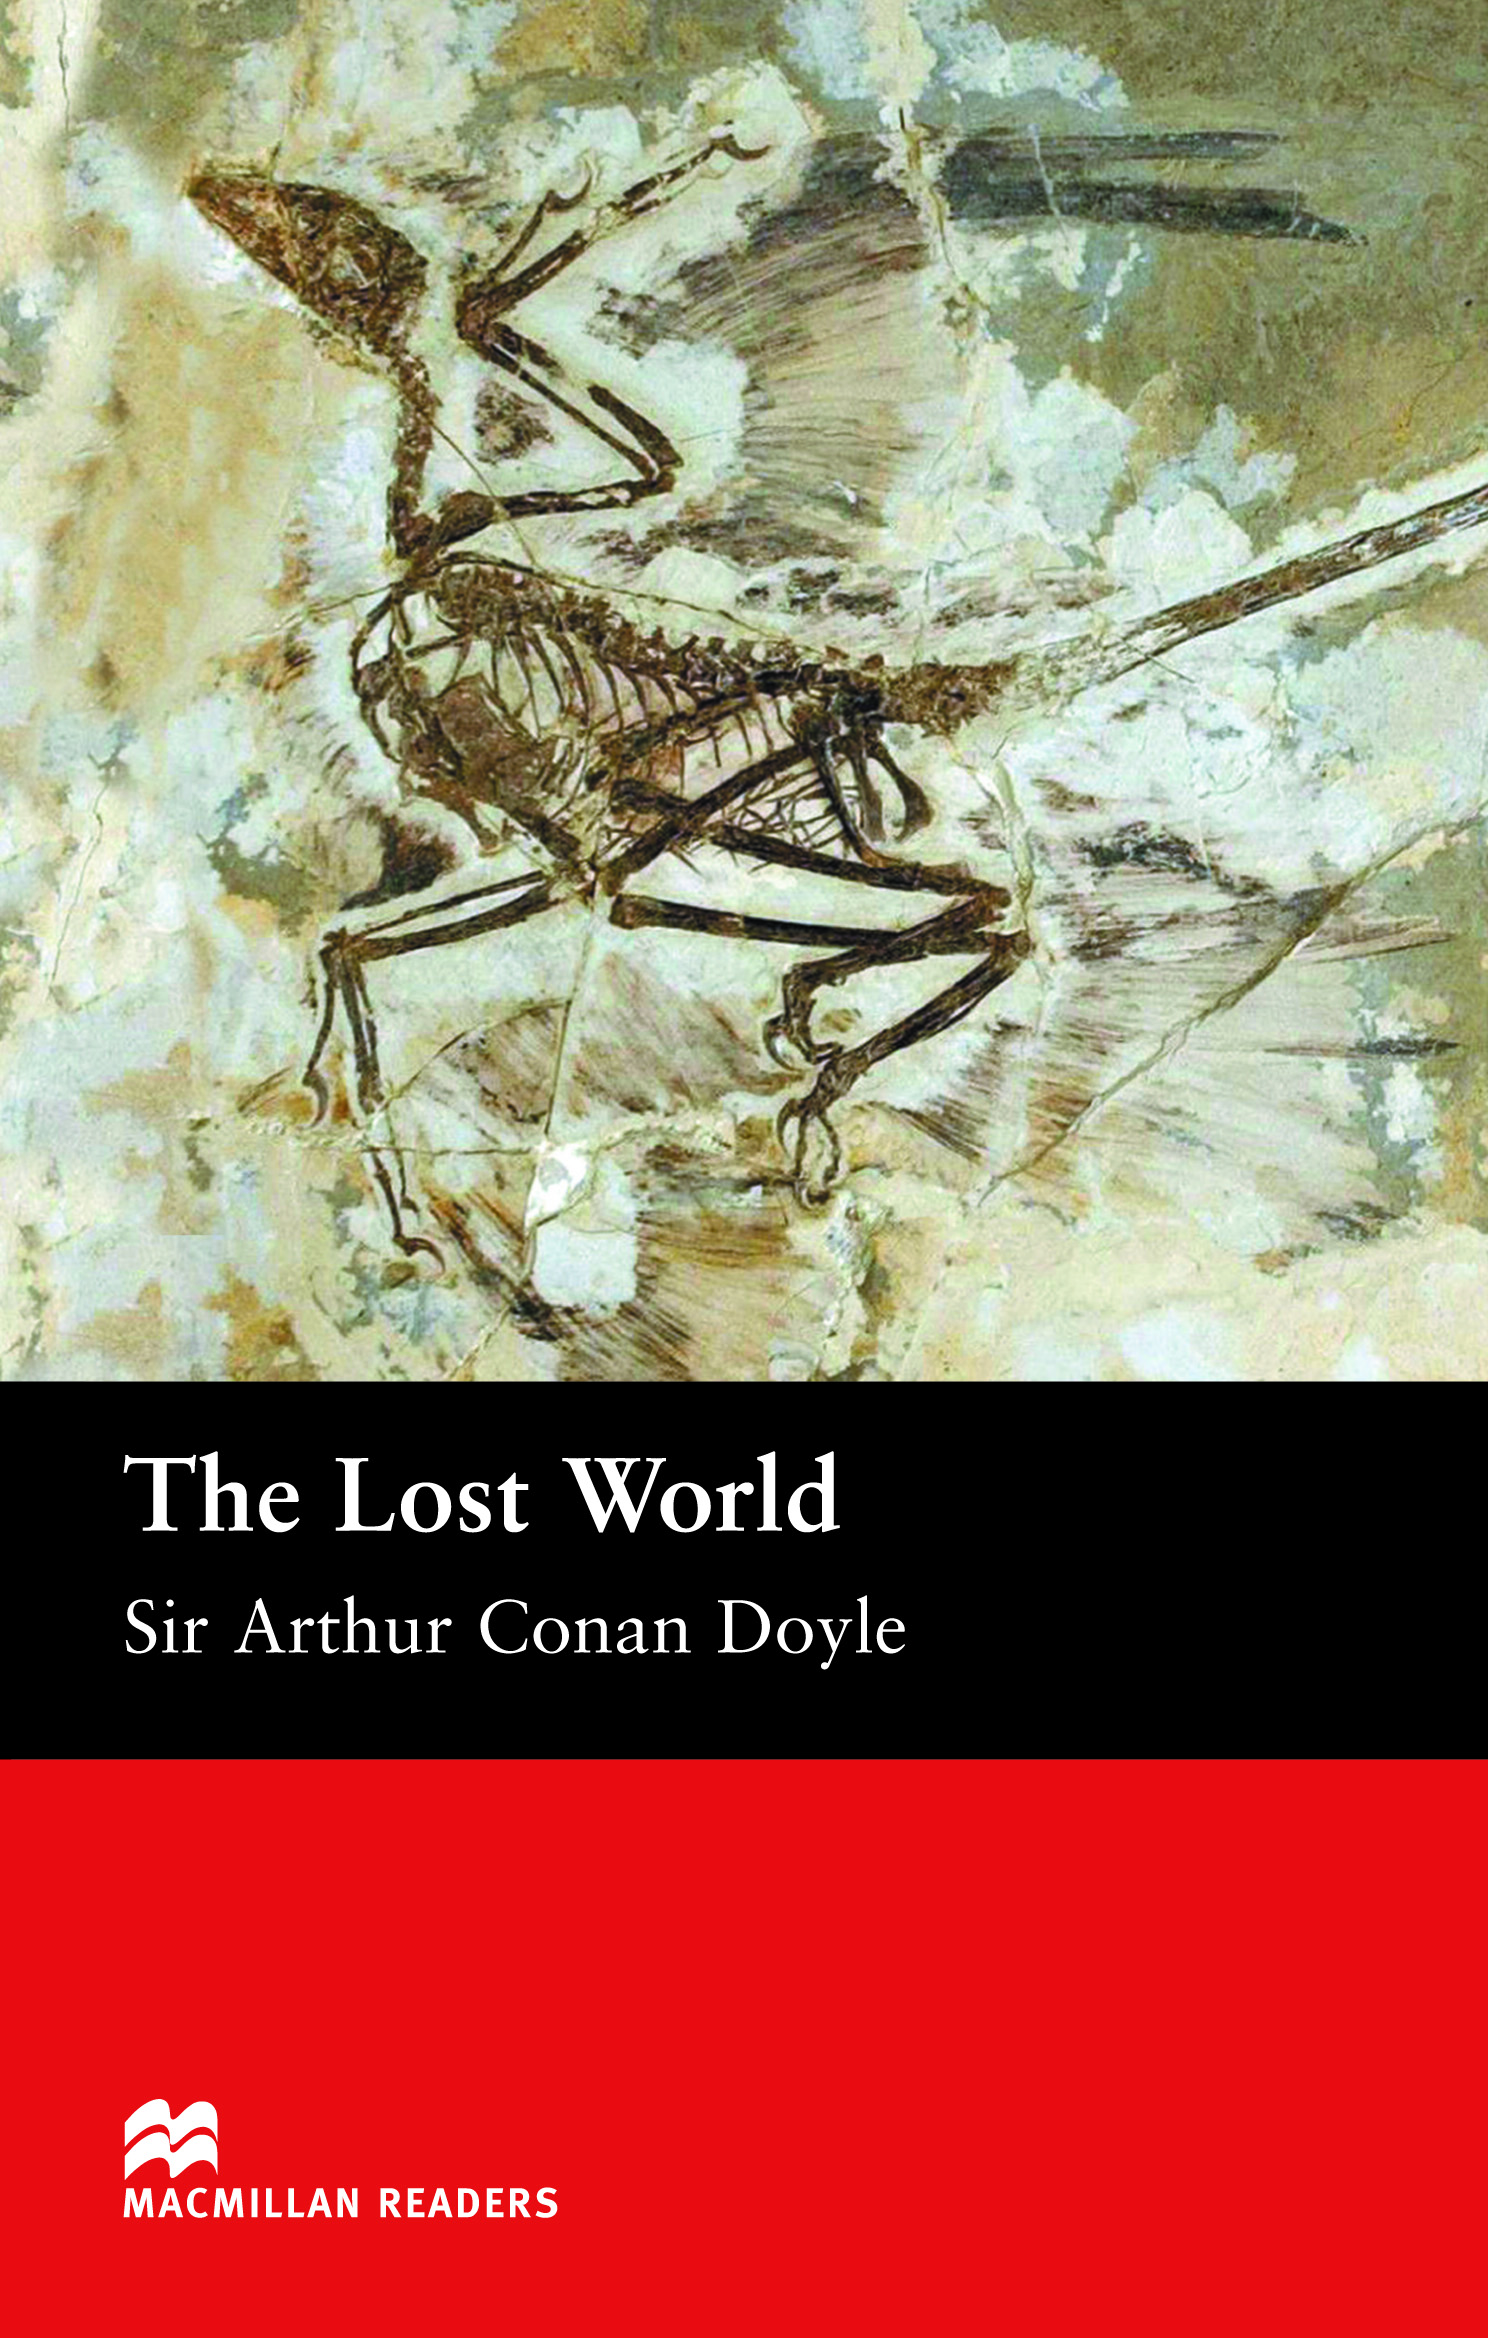 Macmillan Readers: The Lost World